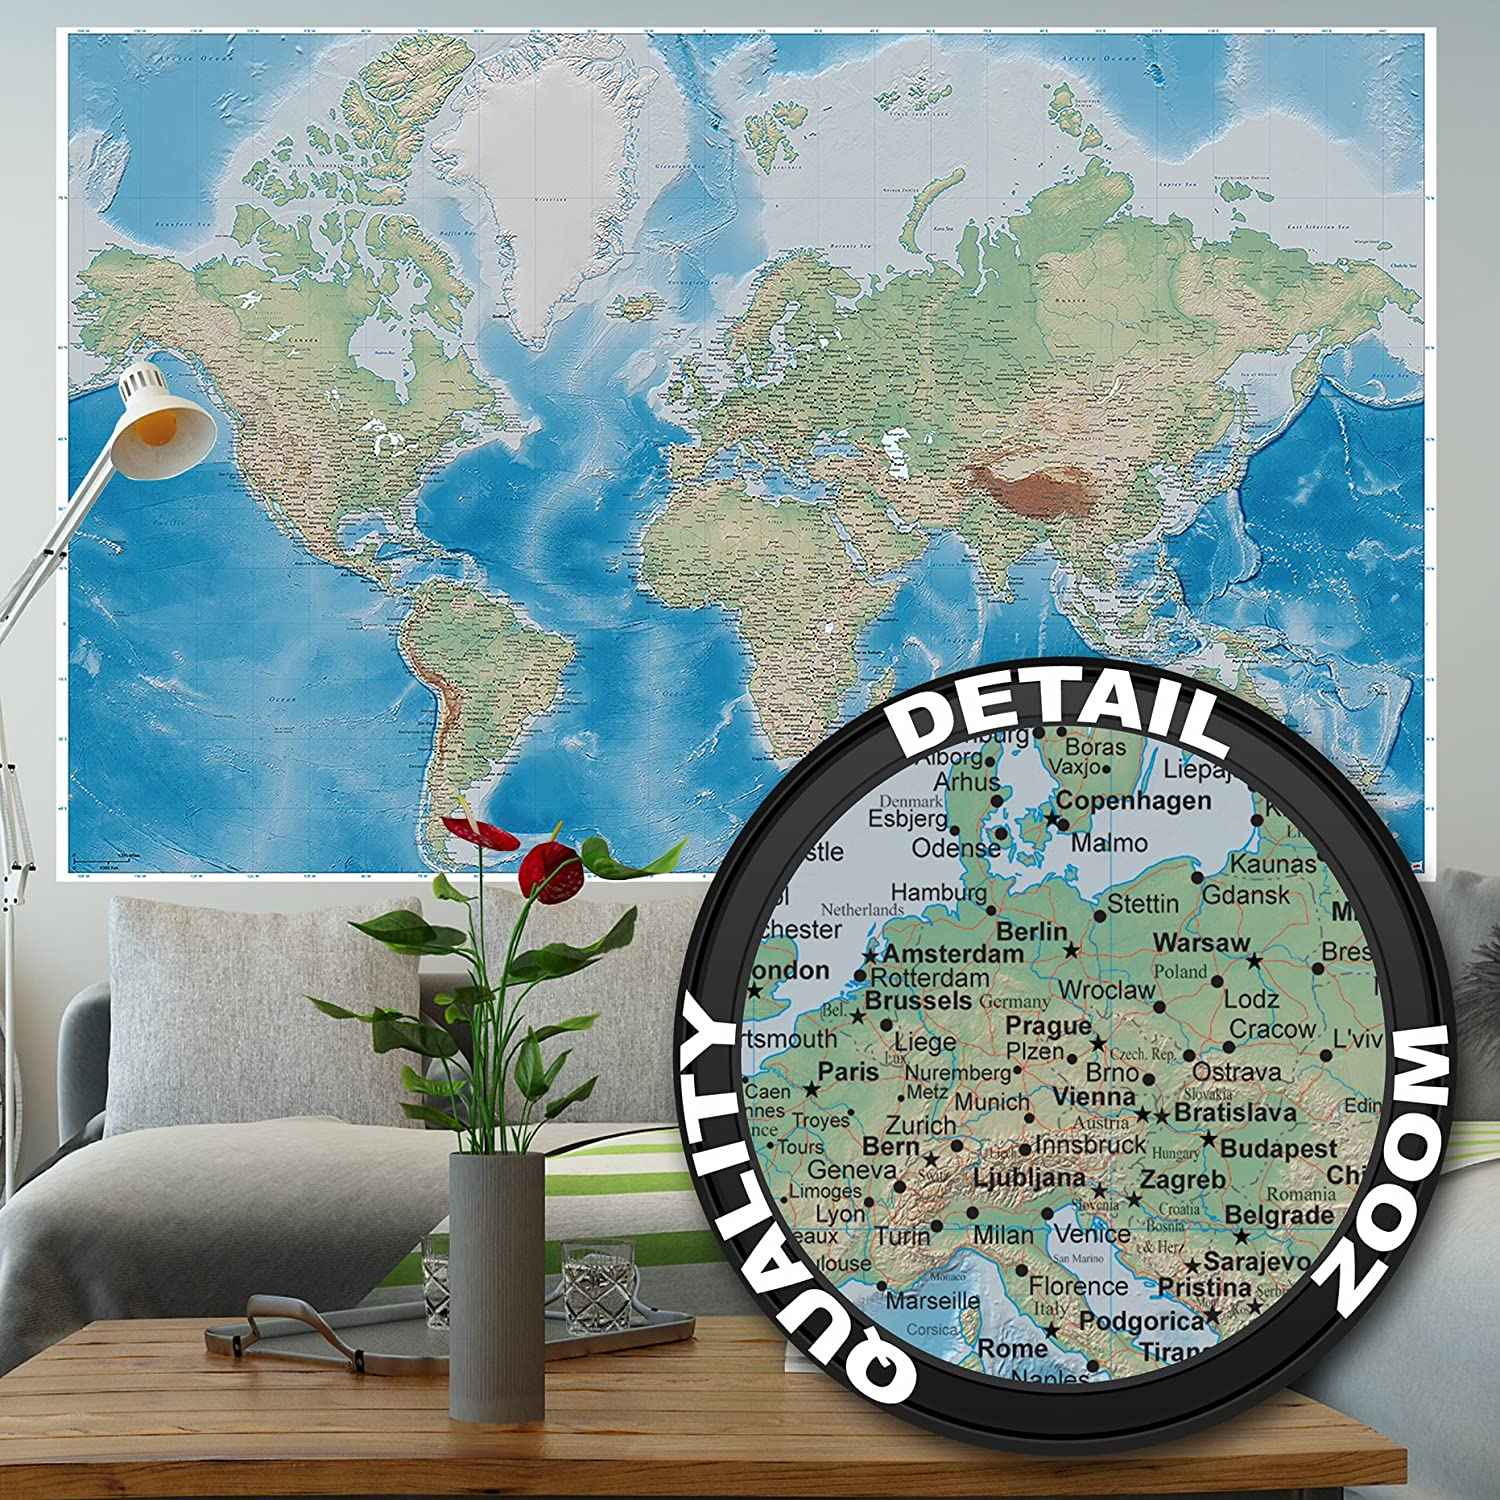 Wallpaper World map – wall picture decoration miller projection in plastically relief design earth atlas globe I paperhanging Wallpaper poster wall decor by GREAT ART (82.7x55 Inch)